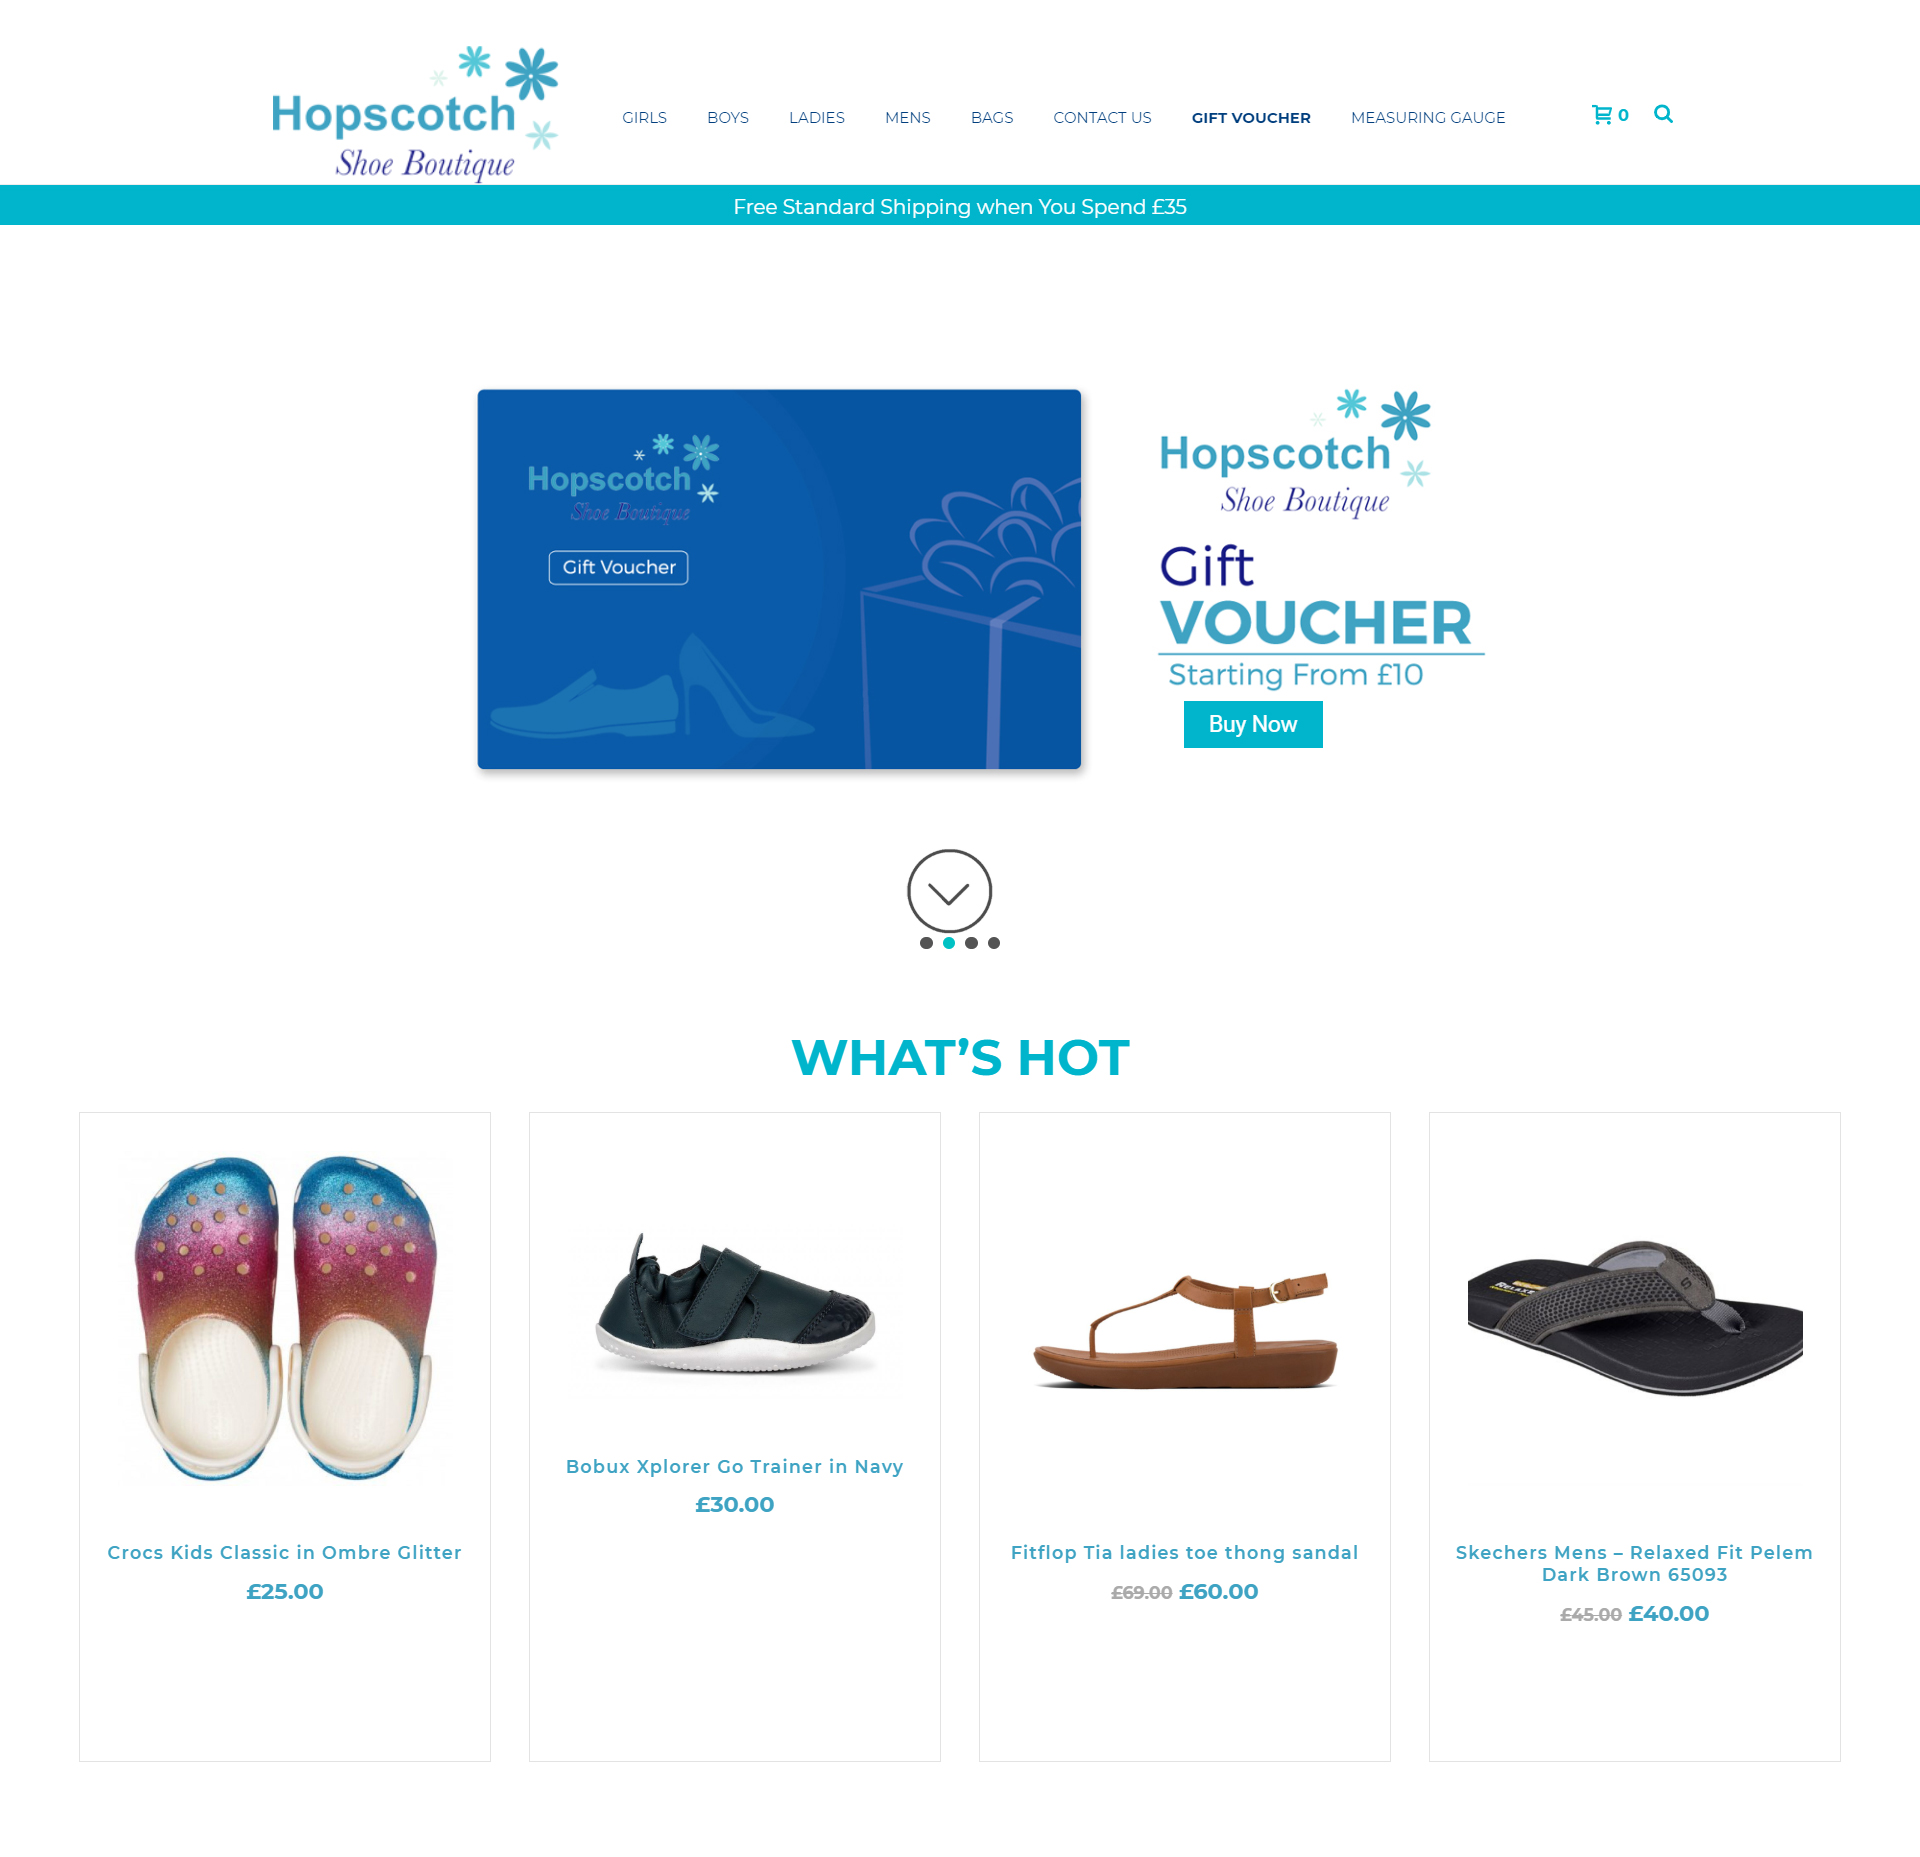 Hopscotch Shoe Boutique